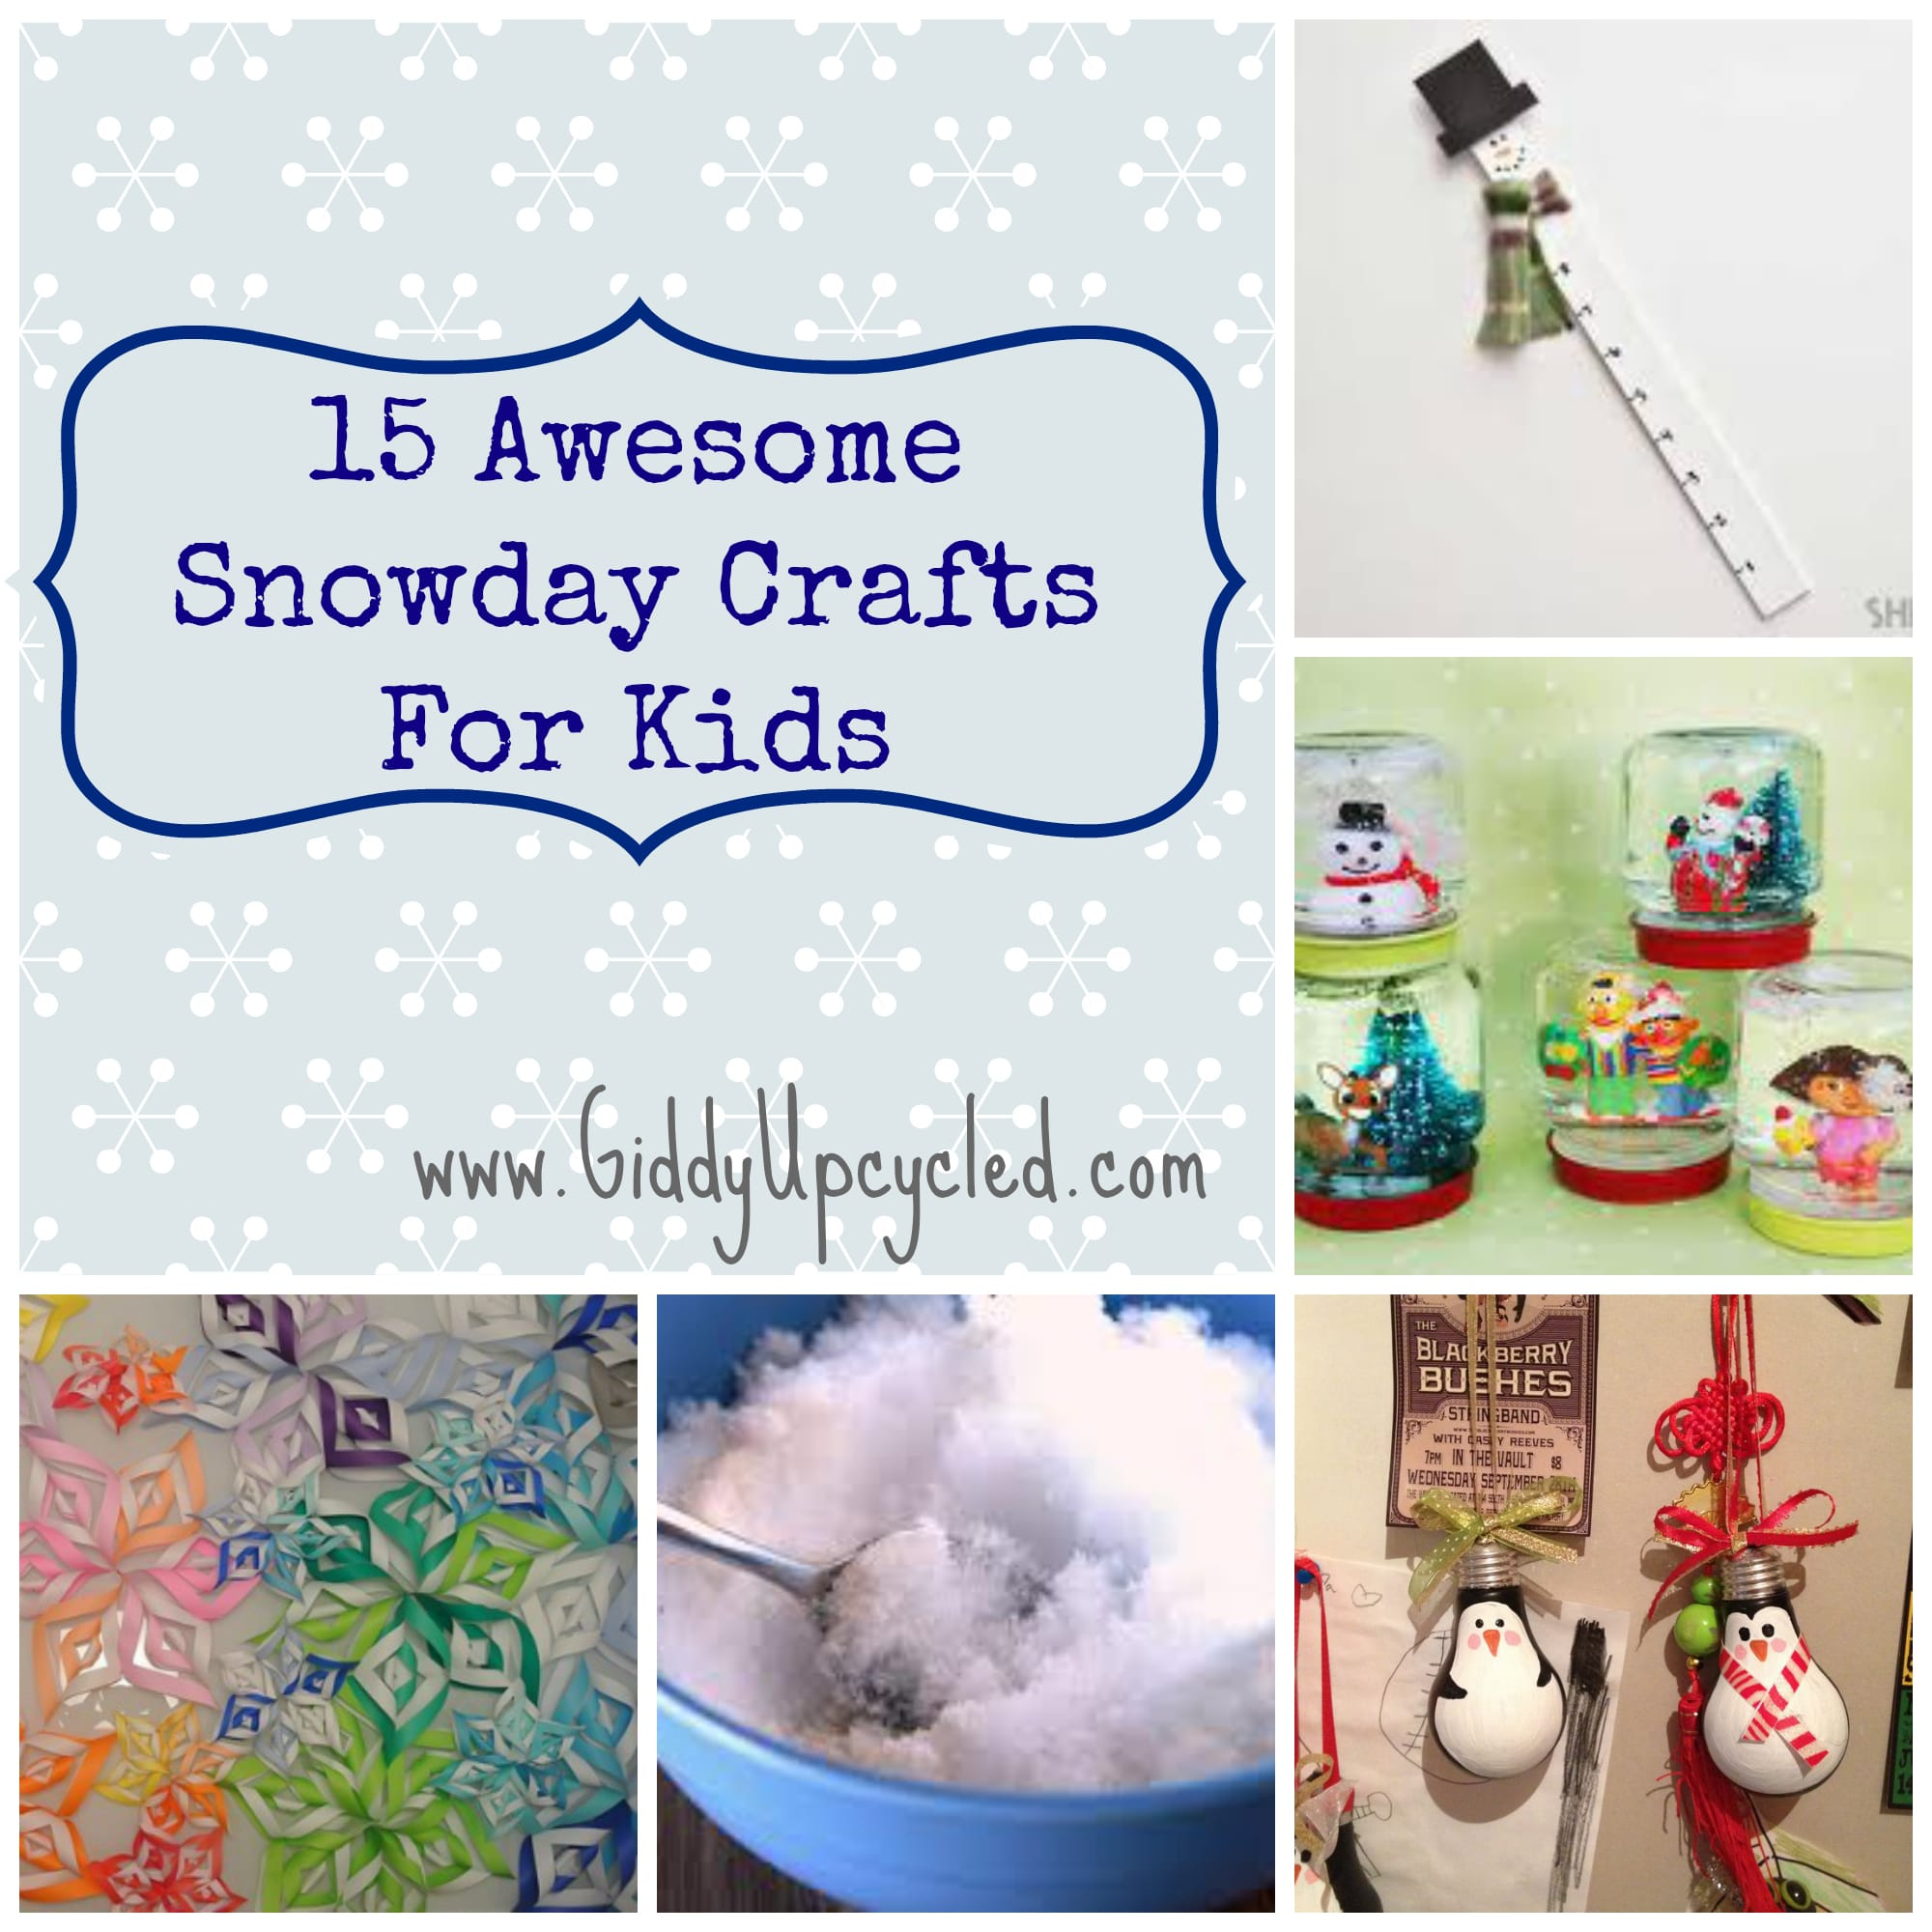 15 Awesome Snow Day Crafts For Kids